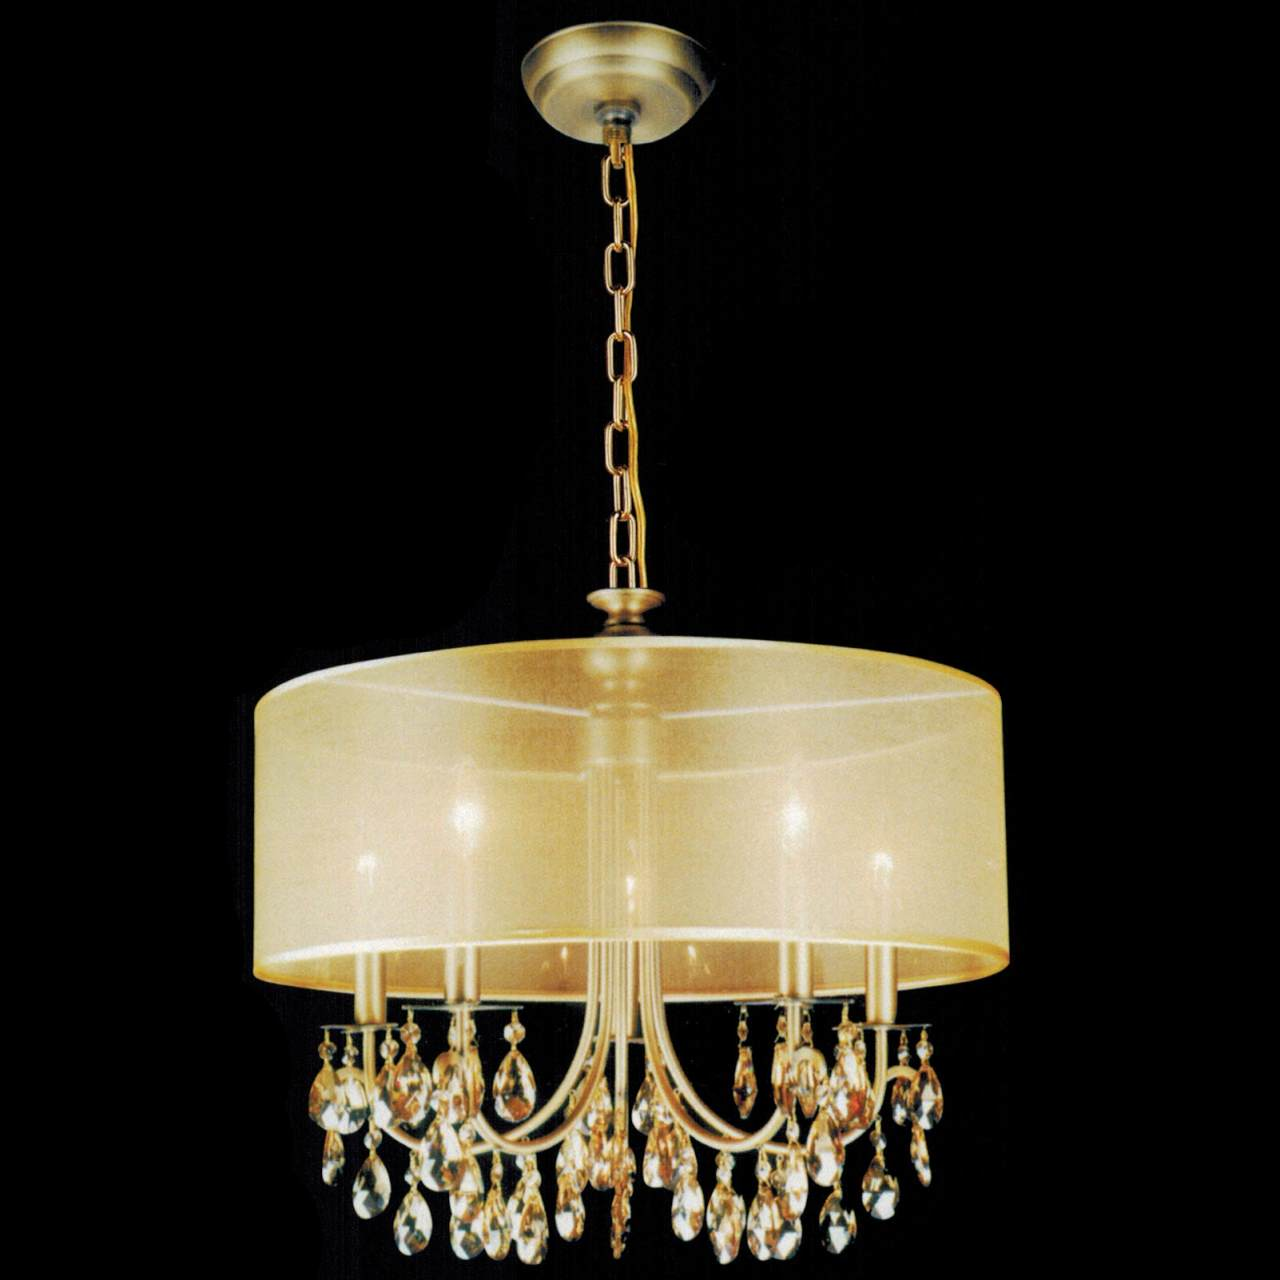 golden ceiling lighting fixture solutions sputnik listed housen ul pendant lights com amazon dp light modern chandelier